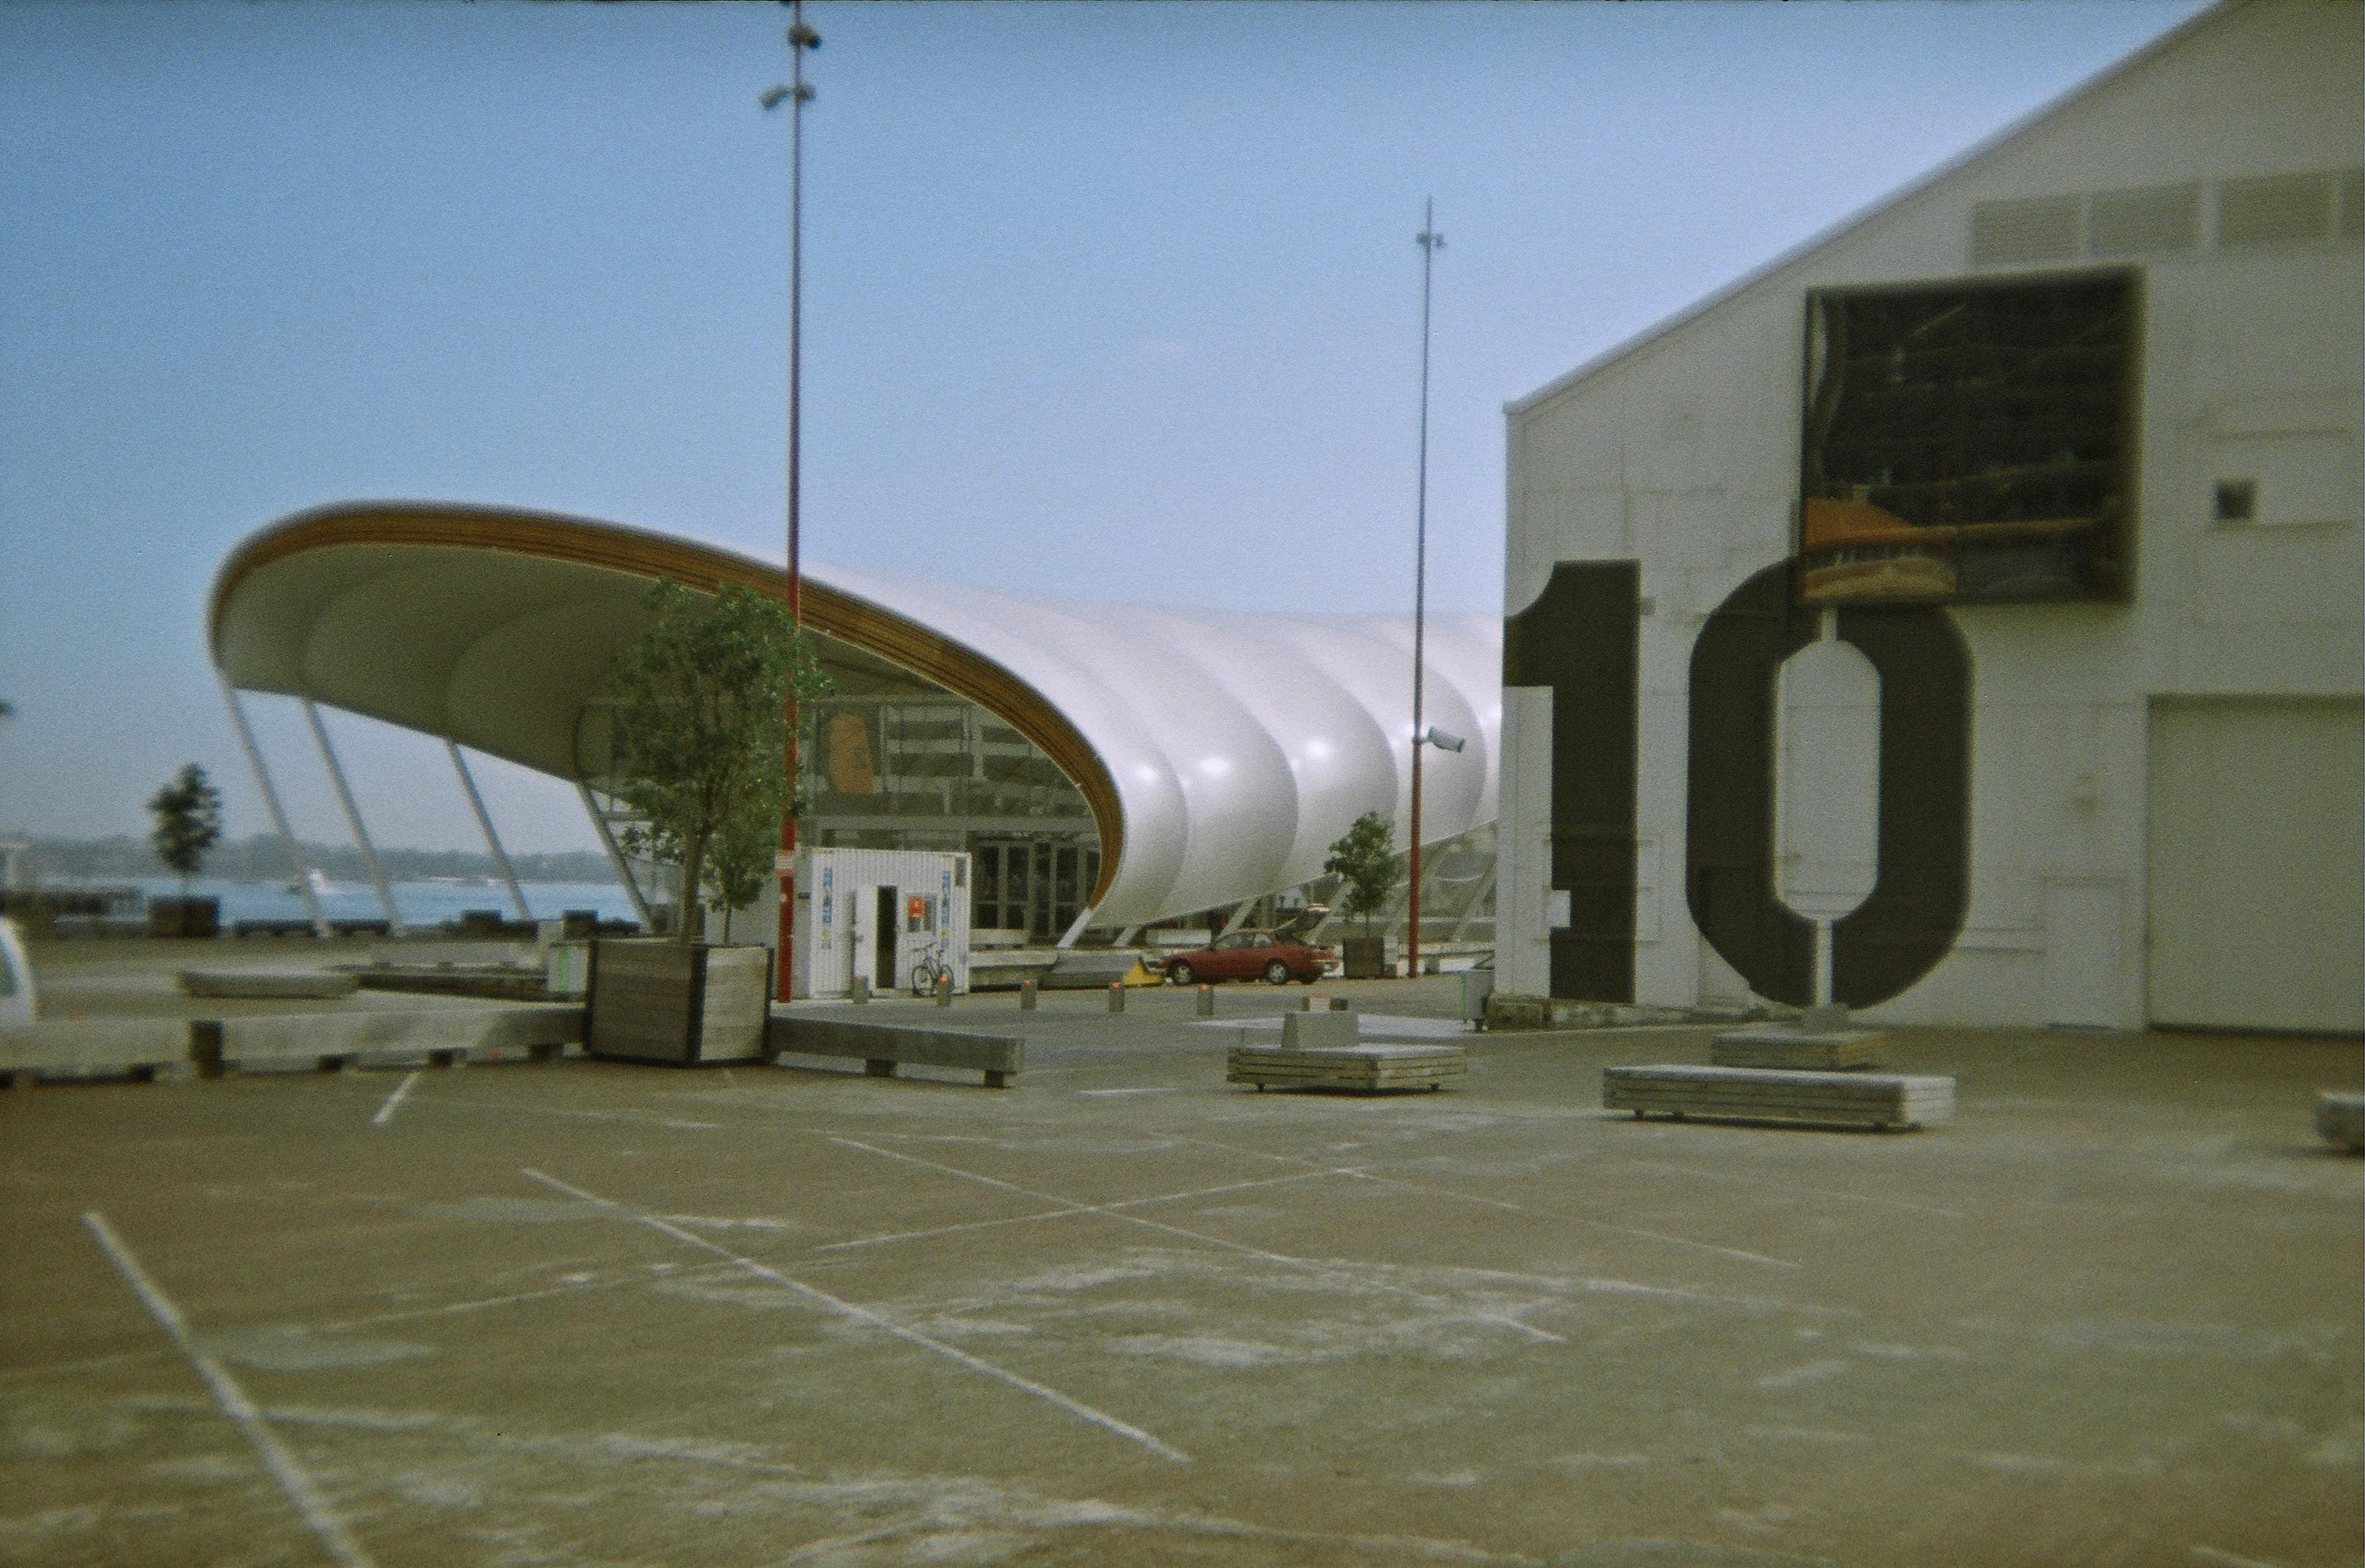 Shed 10